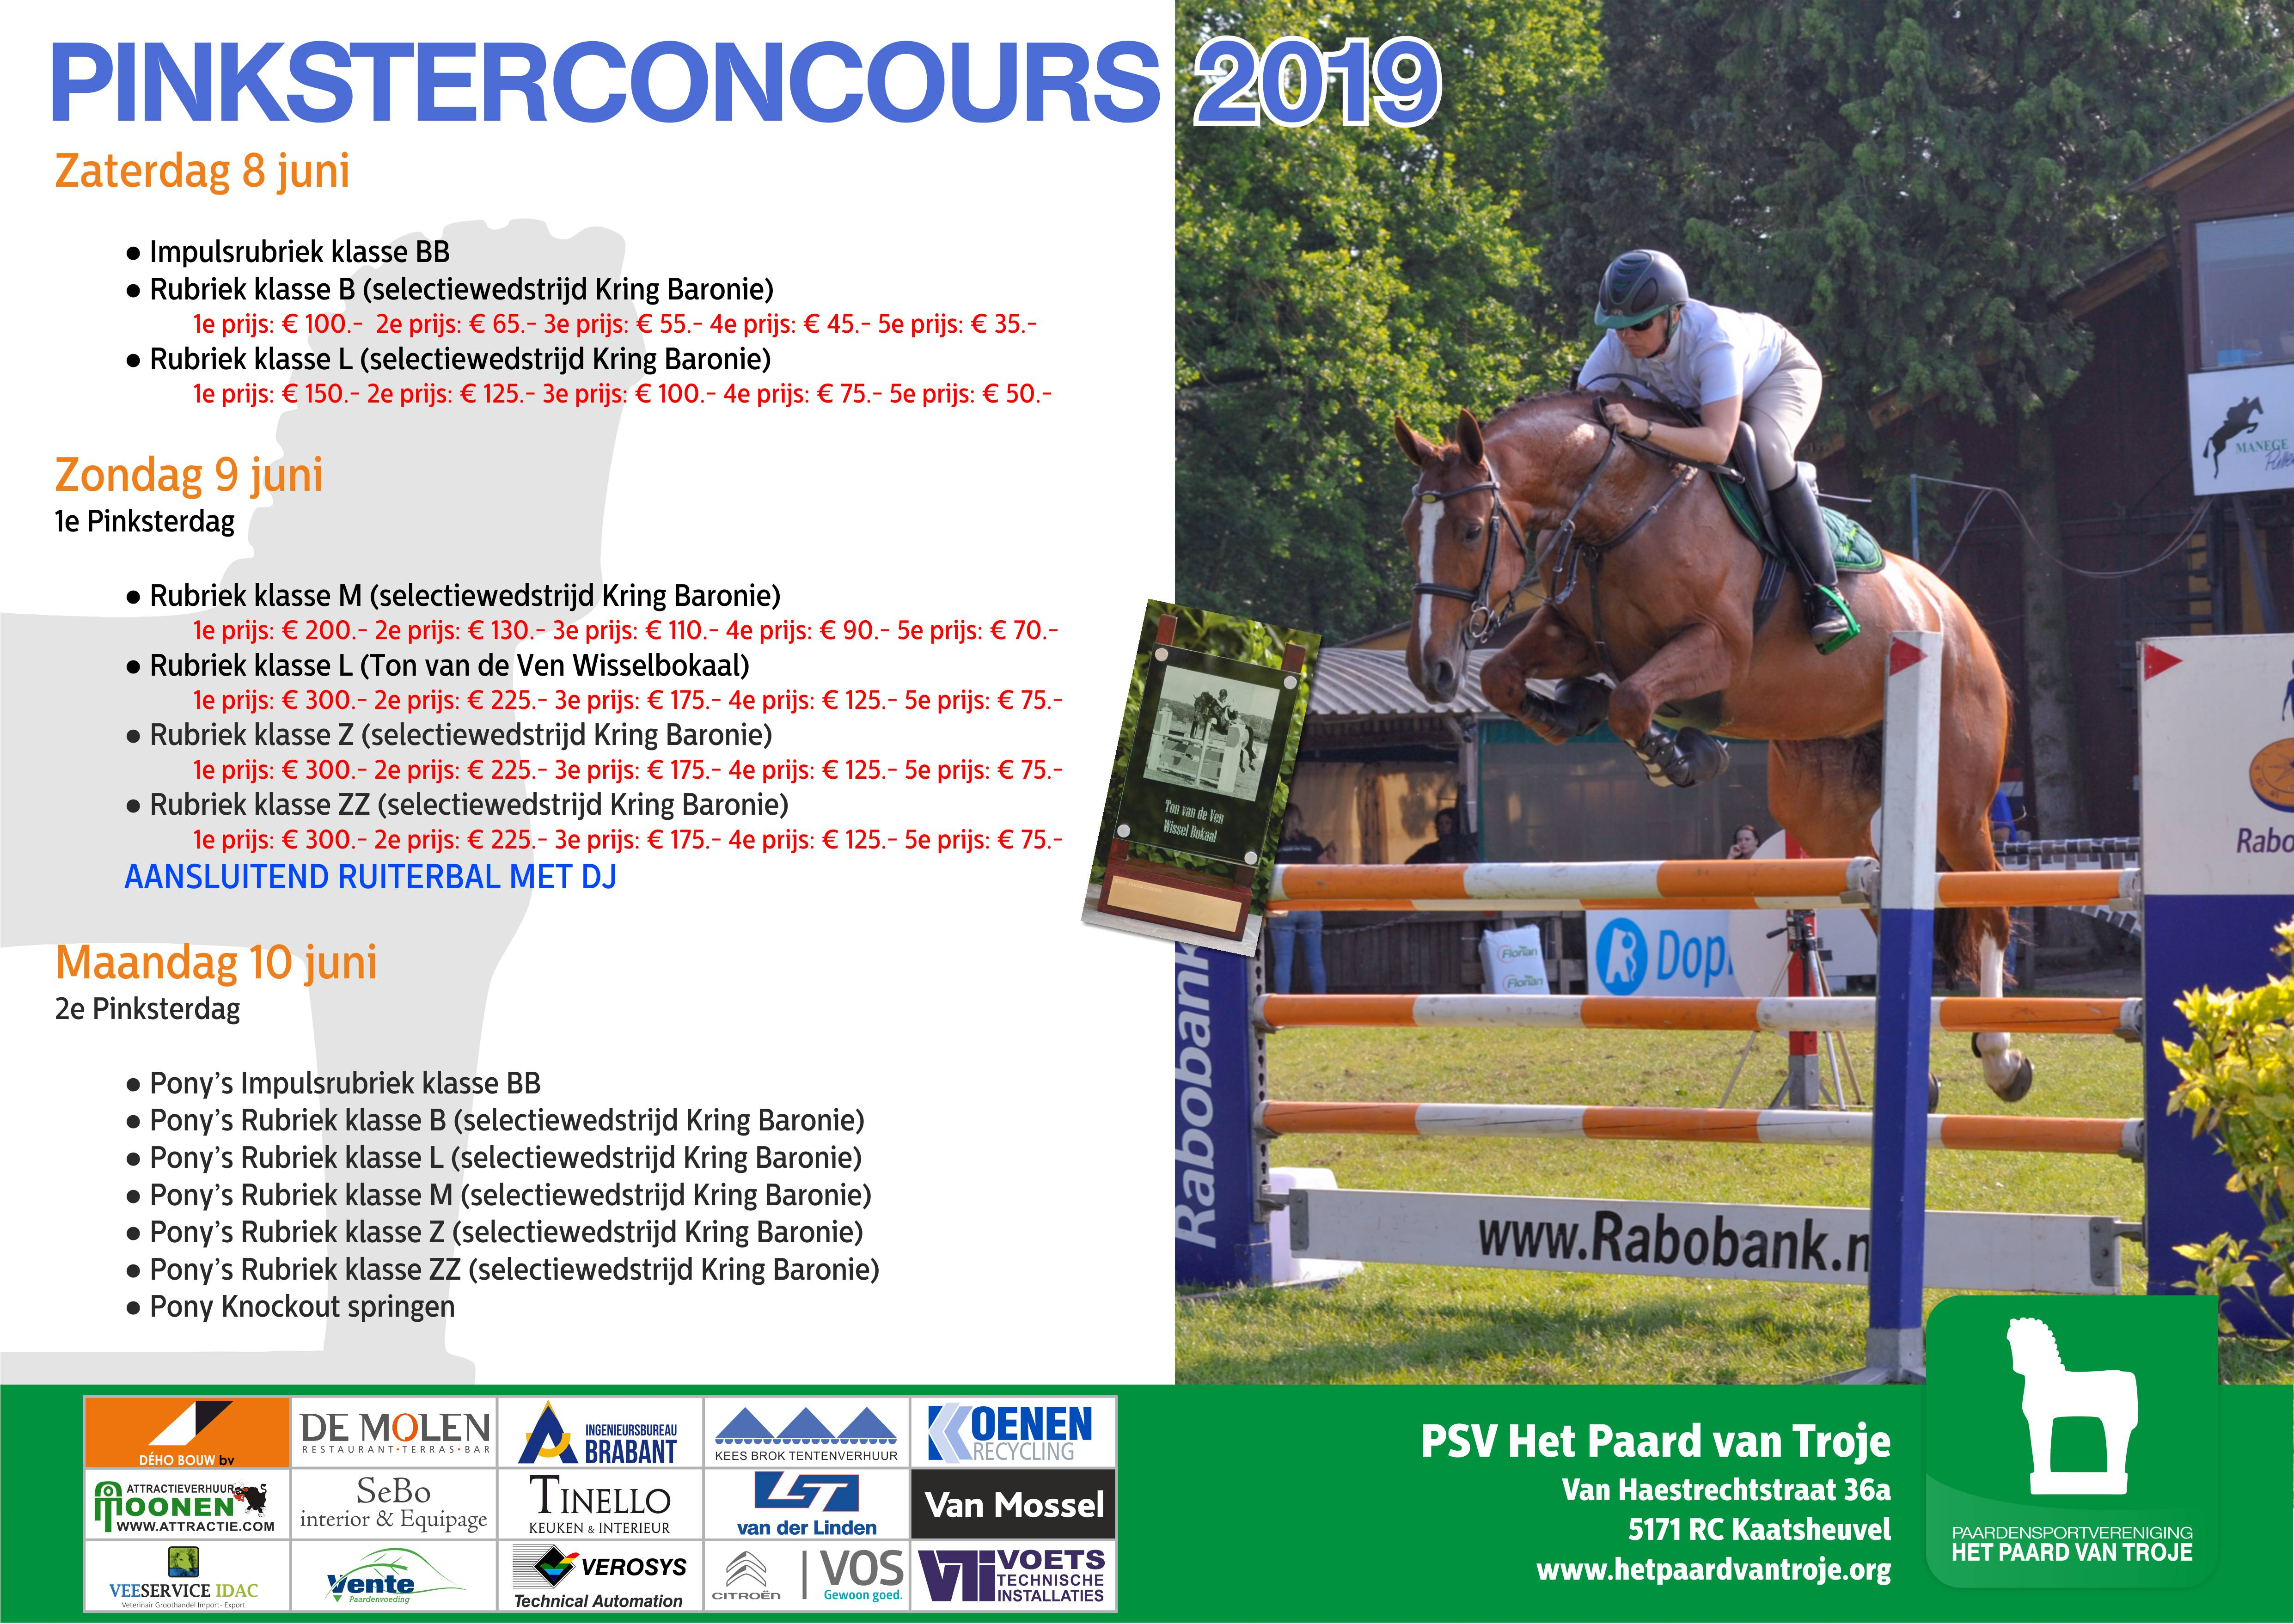 pinksterconcours2019